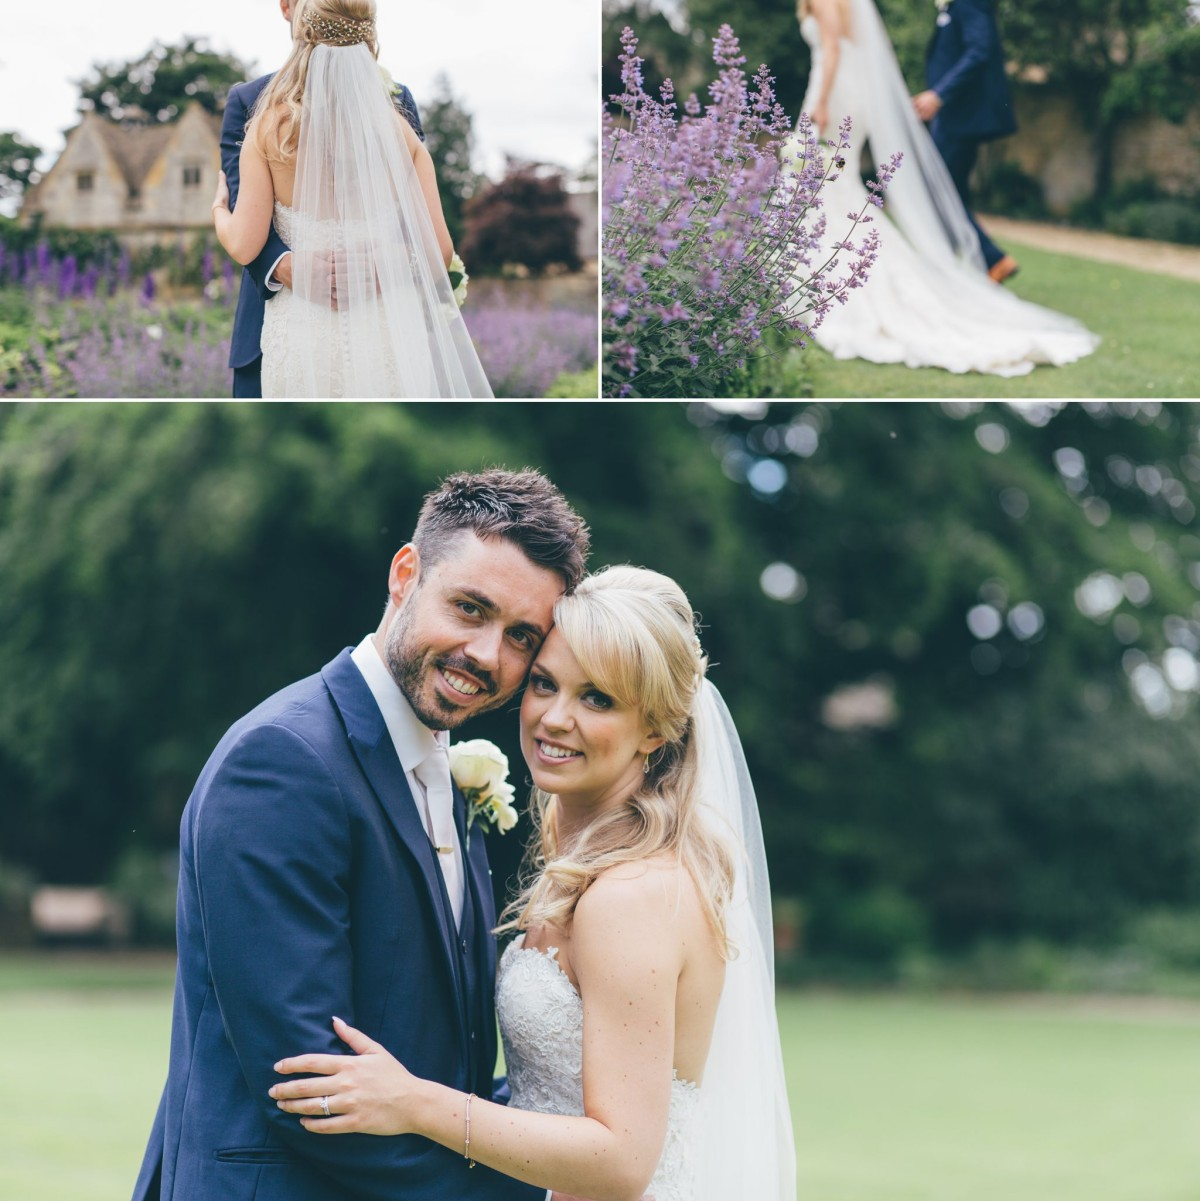 welsh_wedding_photographer_rachel_lambert_photography_lower_slaughter_manor_house_cotswolds_harriet_dean_ 39